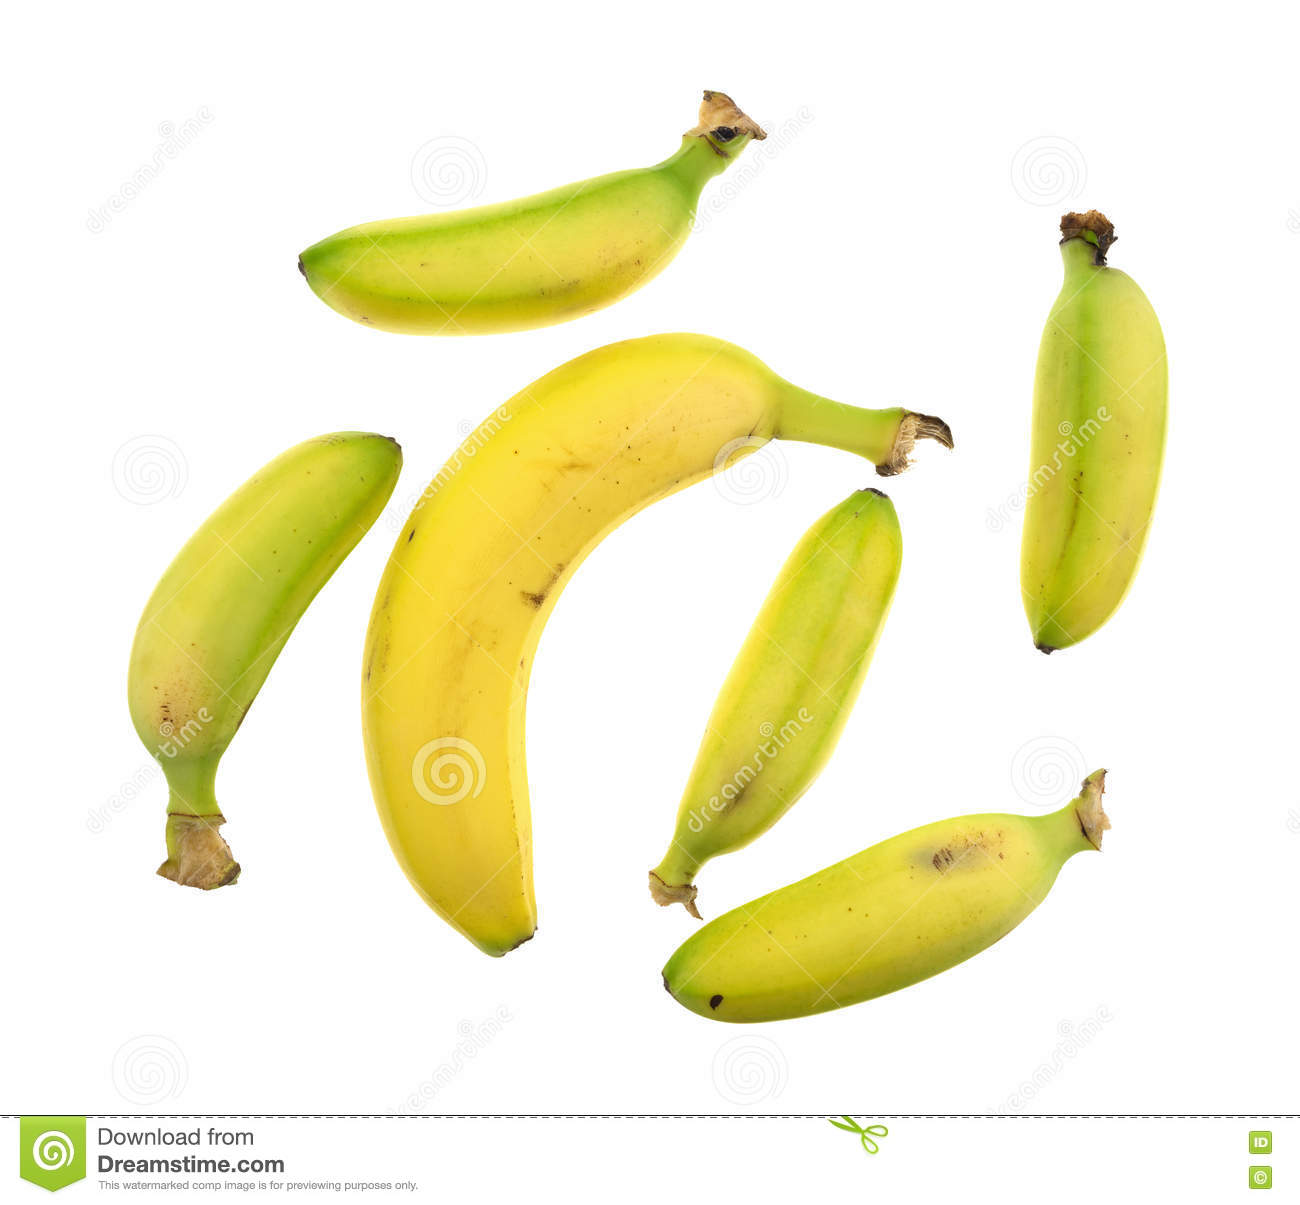 small and large bananas on a white background stock photo - image of